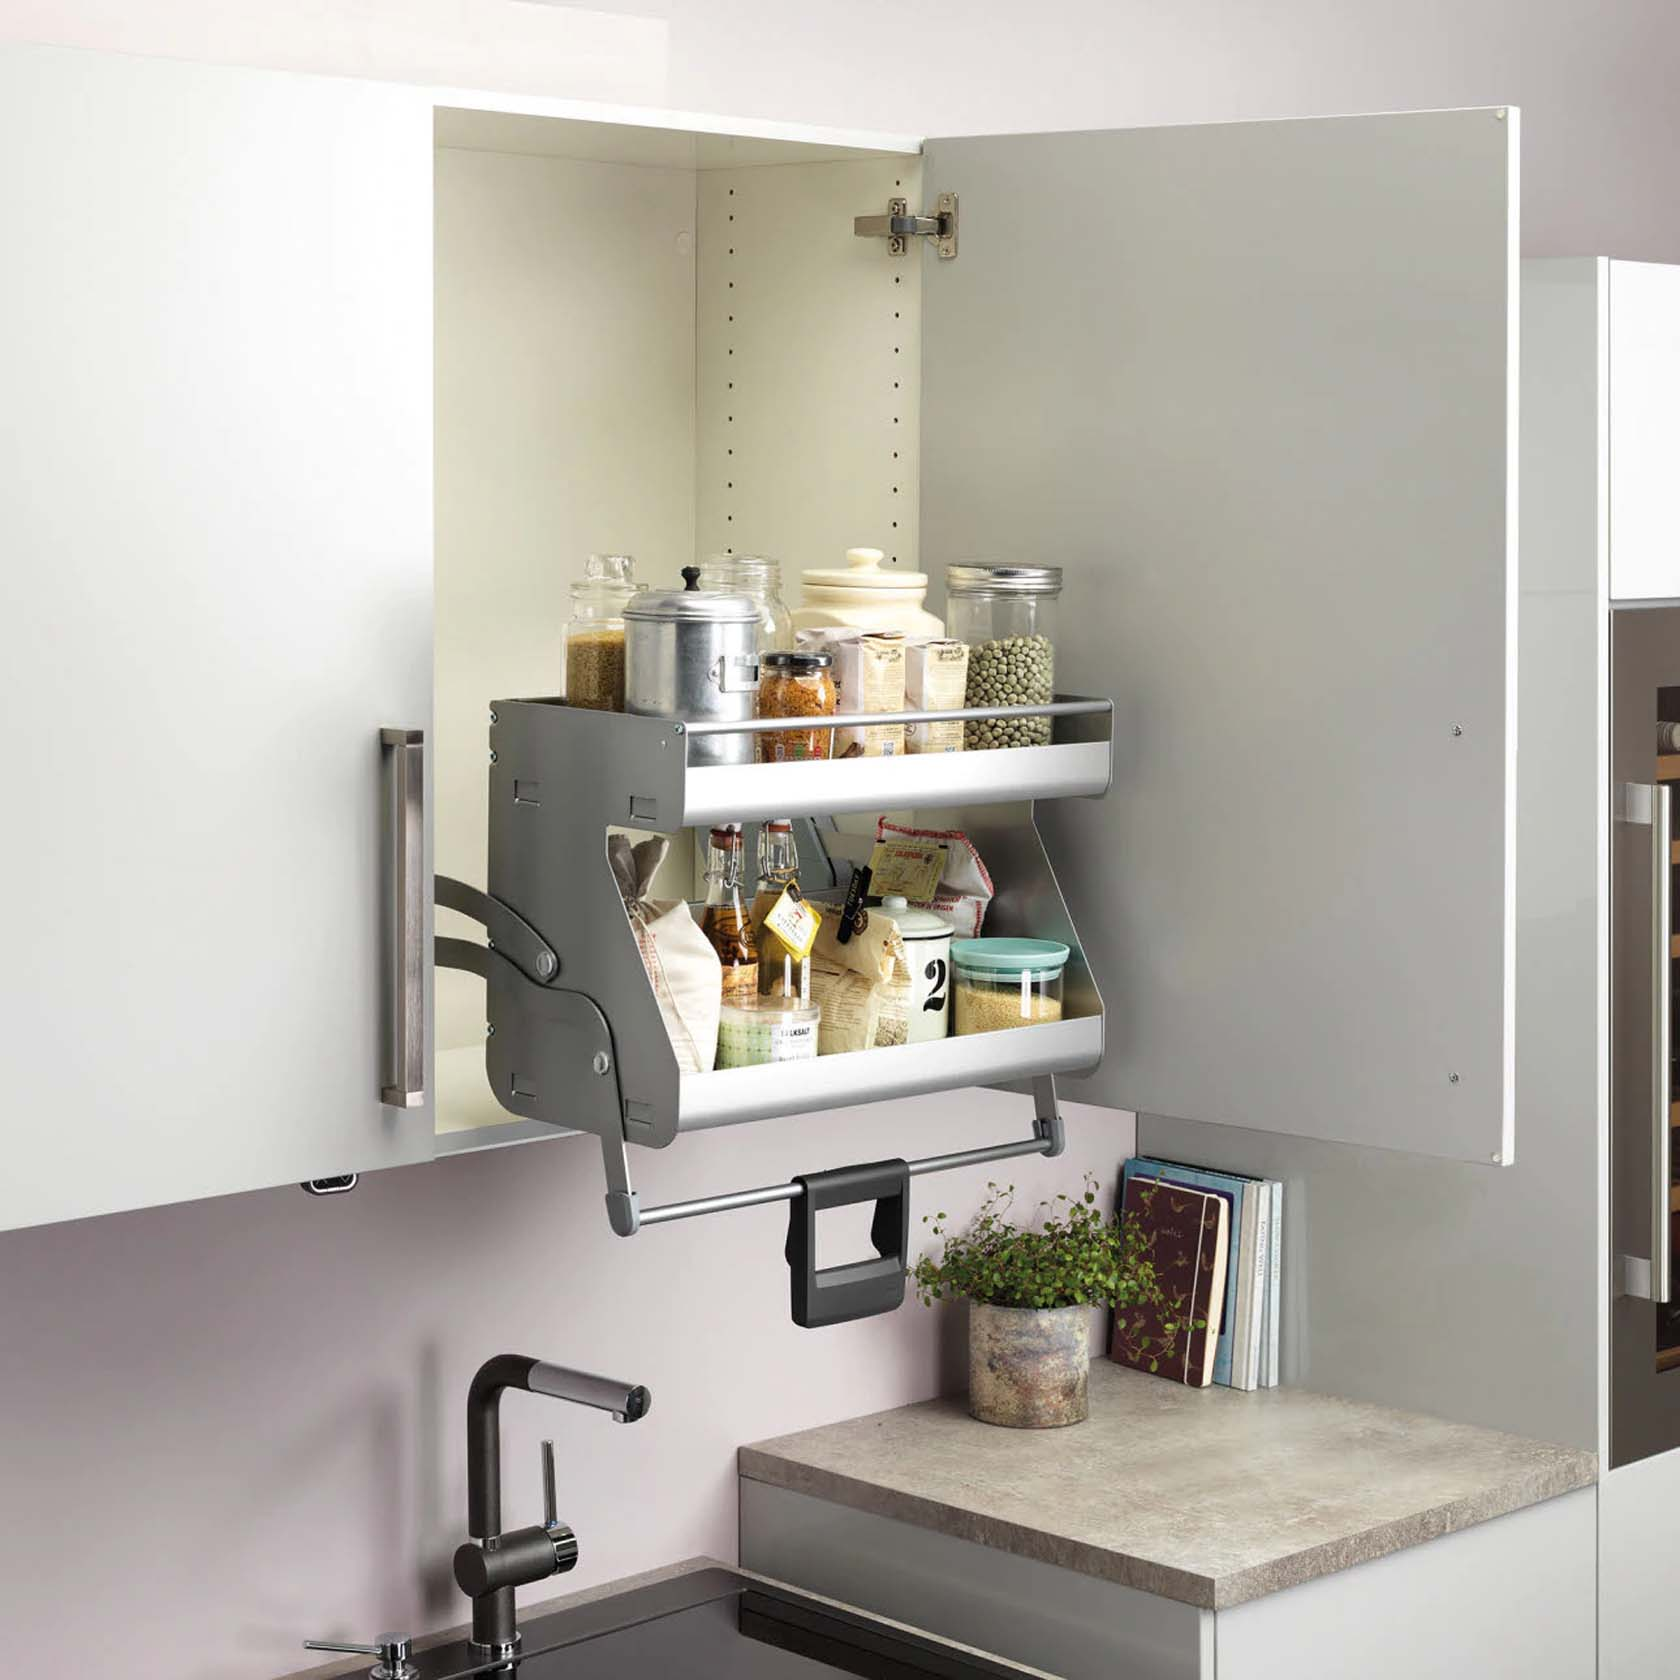 An Automated Stand For Spices For The Kitchen